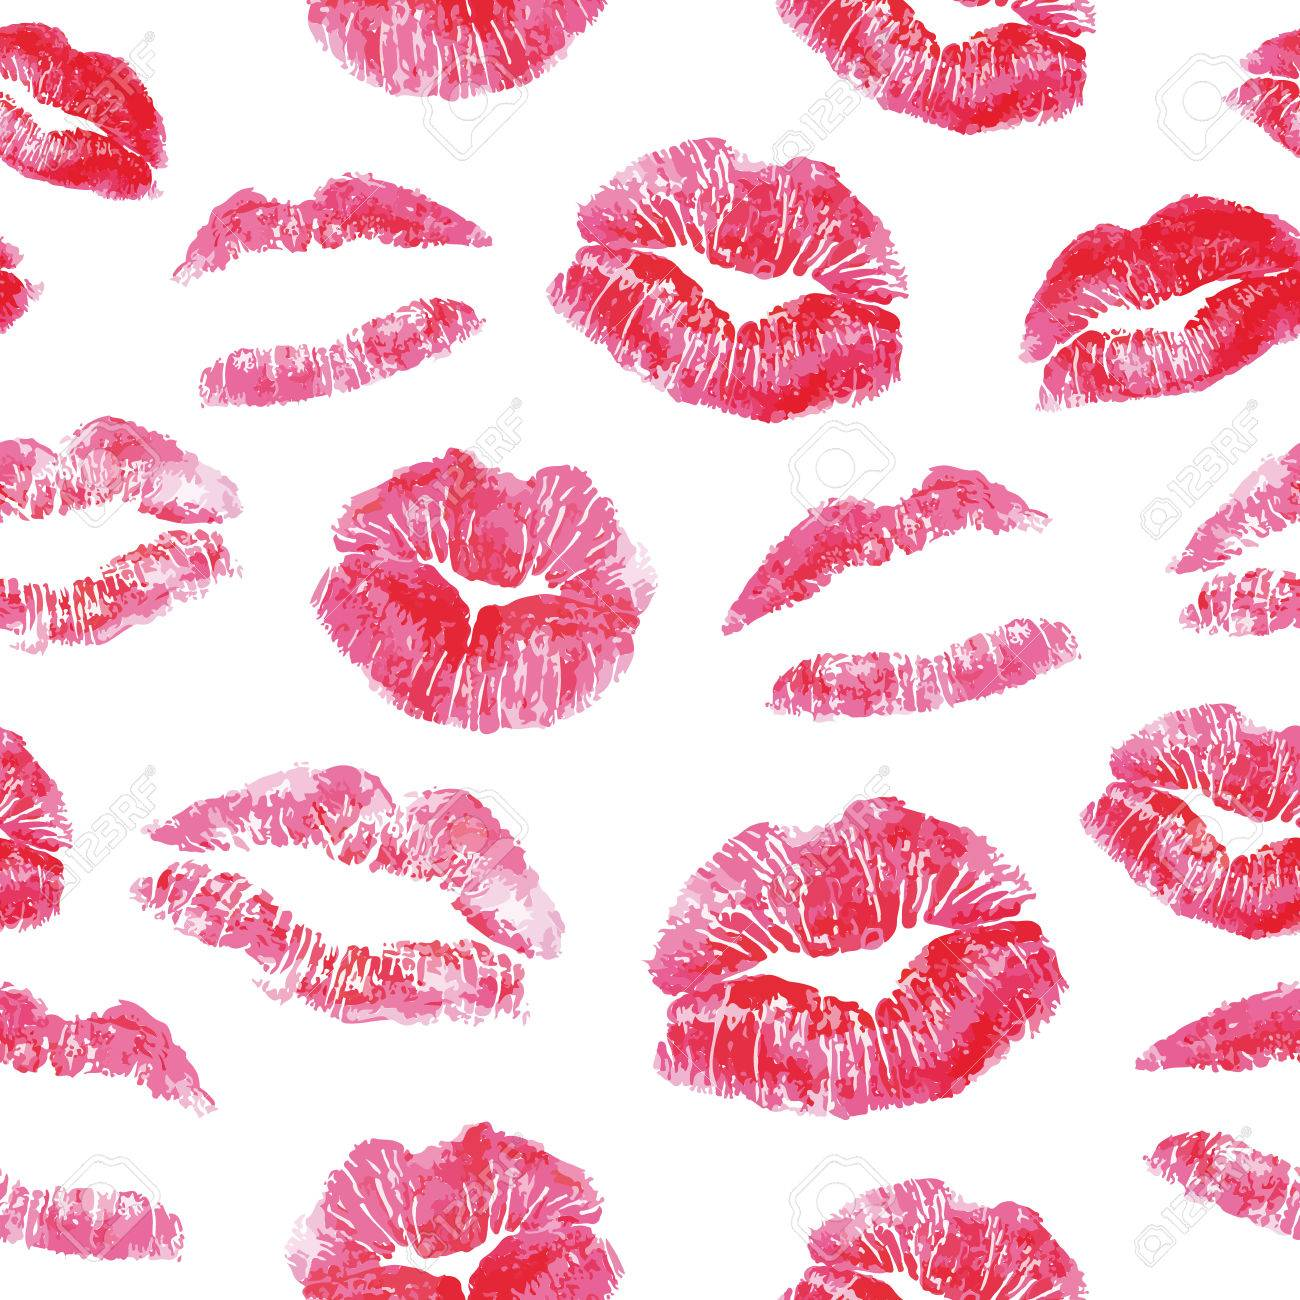 Seamless Pattern   Red Lips Kisses Prints Background Realistic 1300x1300